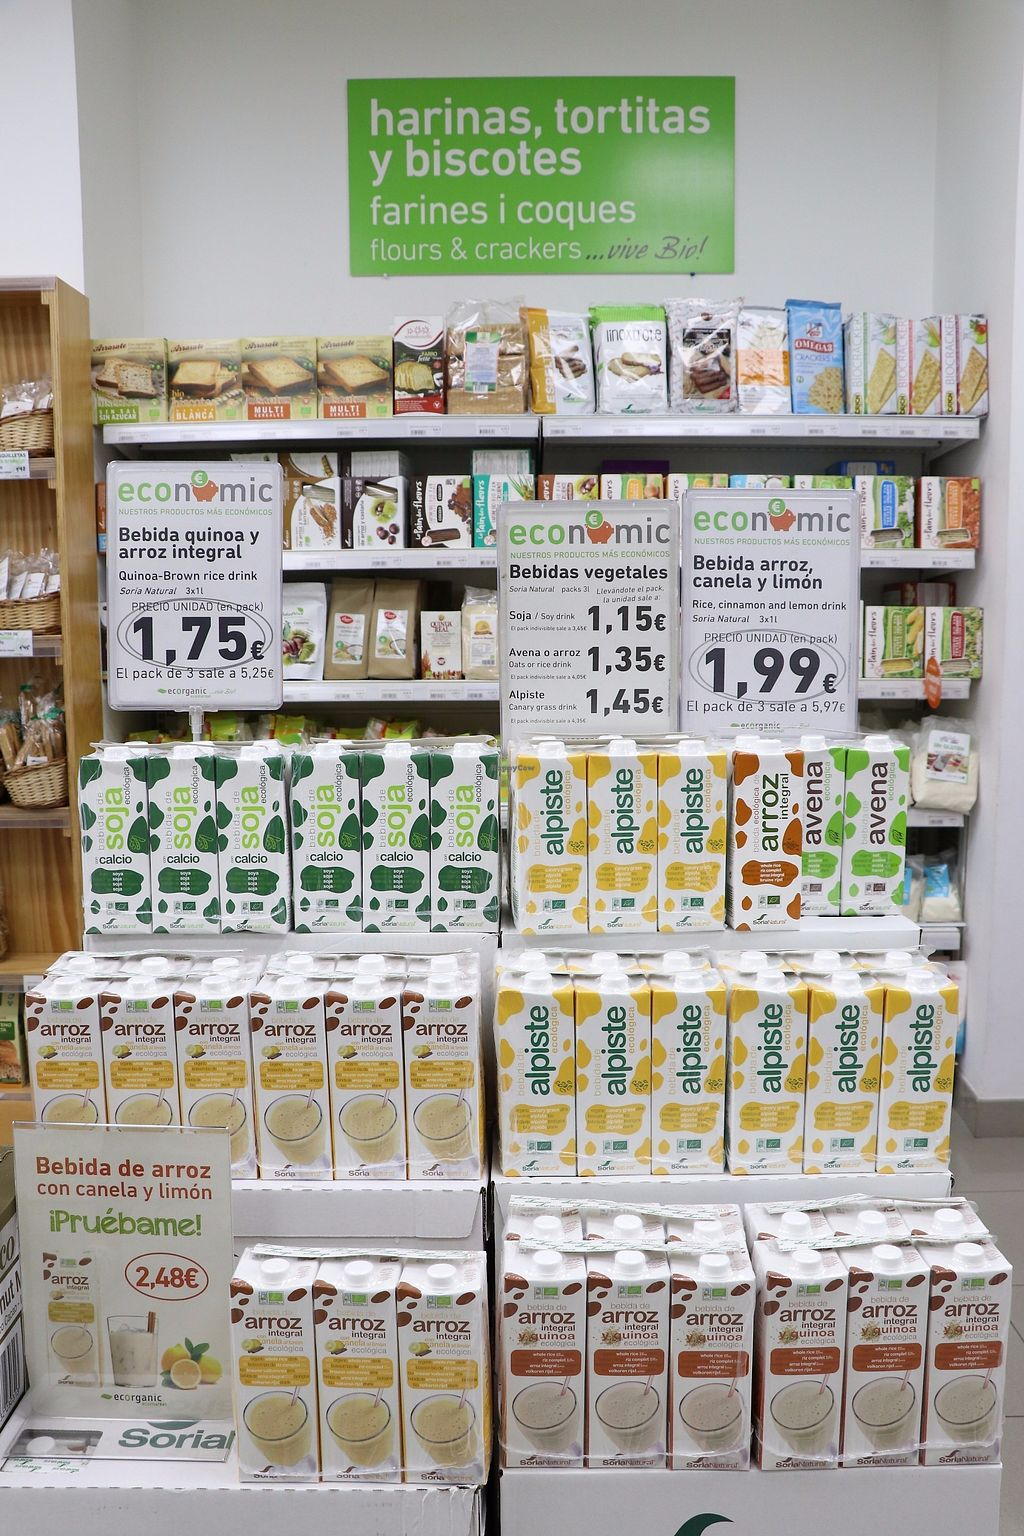 """Photo of Ecorganic  by <a href=""""/members/profile/Organicveganvalencia"""">Organicveganvalencia</a> <br/>Plant based mylks always on offer! <br/> August 14, 2017  - <a href='/contact/abuse/image/98376/292537'>Report</a>"""